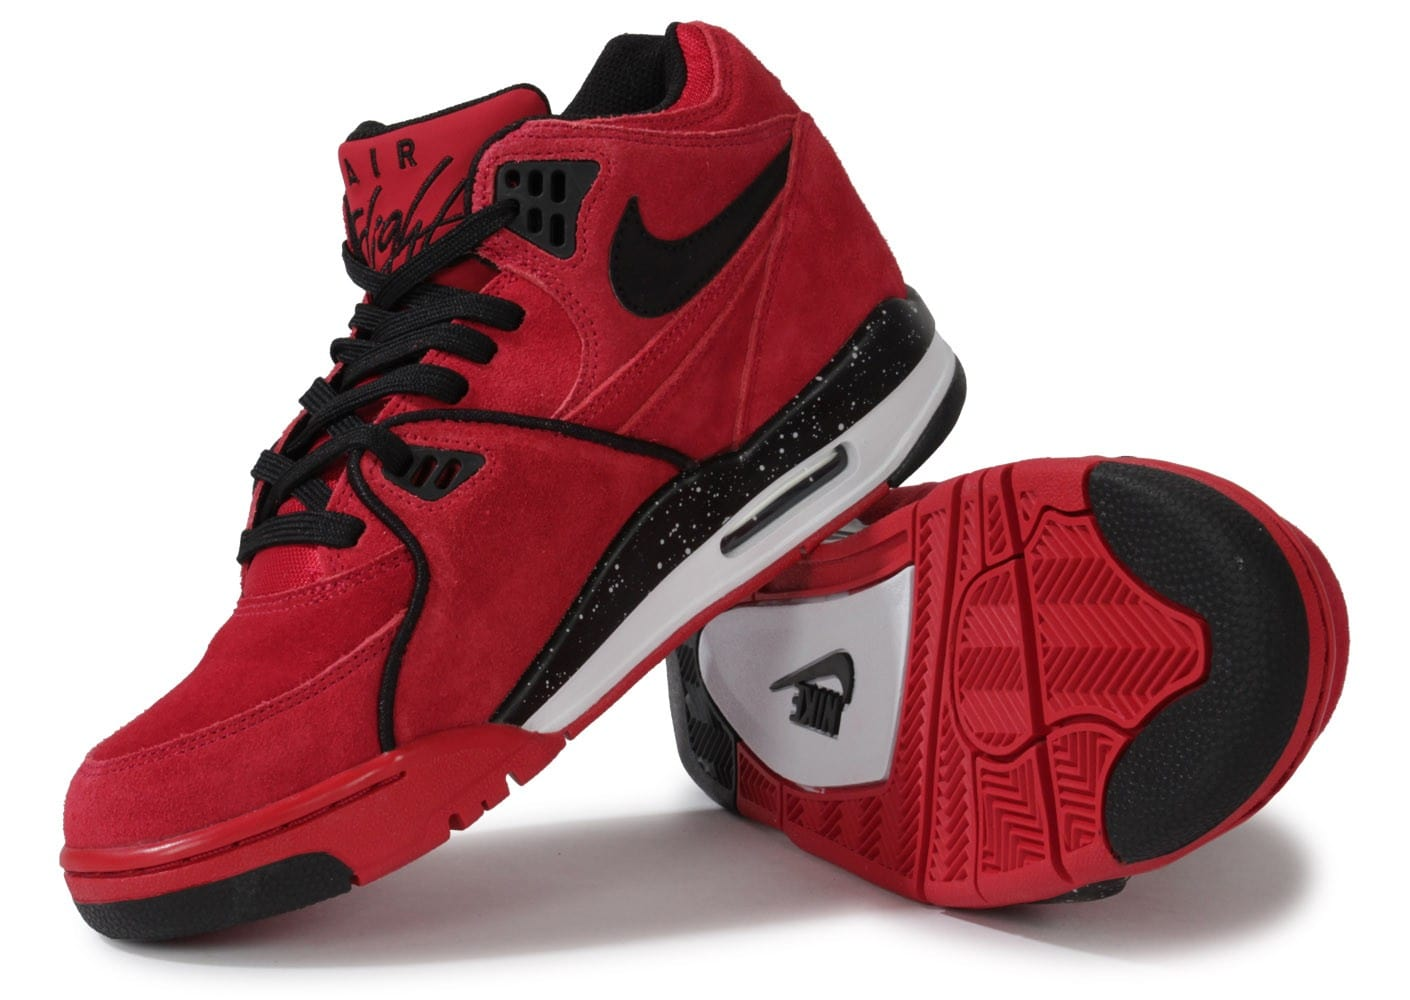 Flight Chaussures Homme Rouge Baskets Air 89 Chausport Nike nNwOPm8v0y